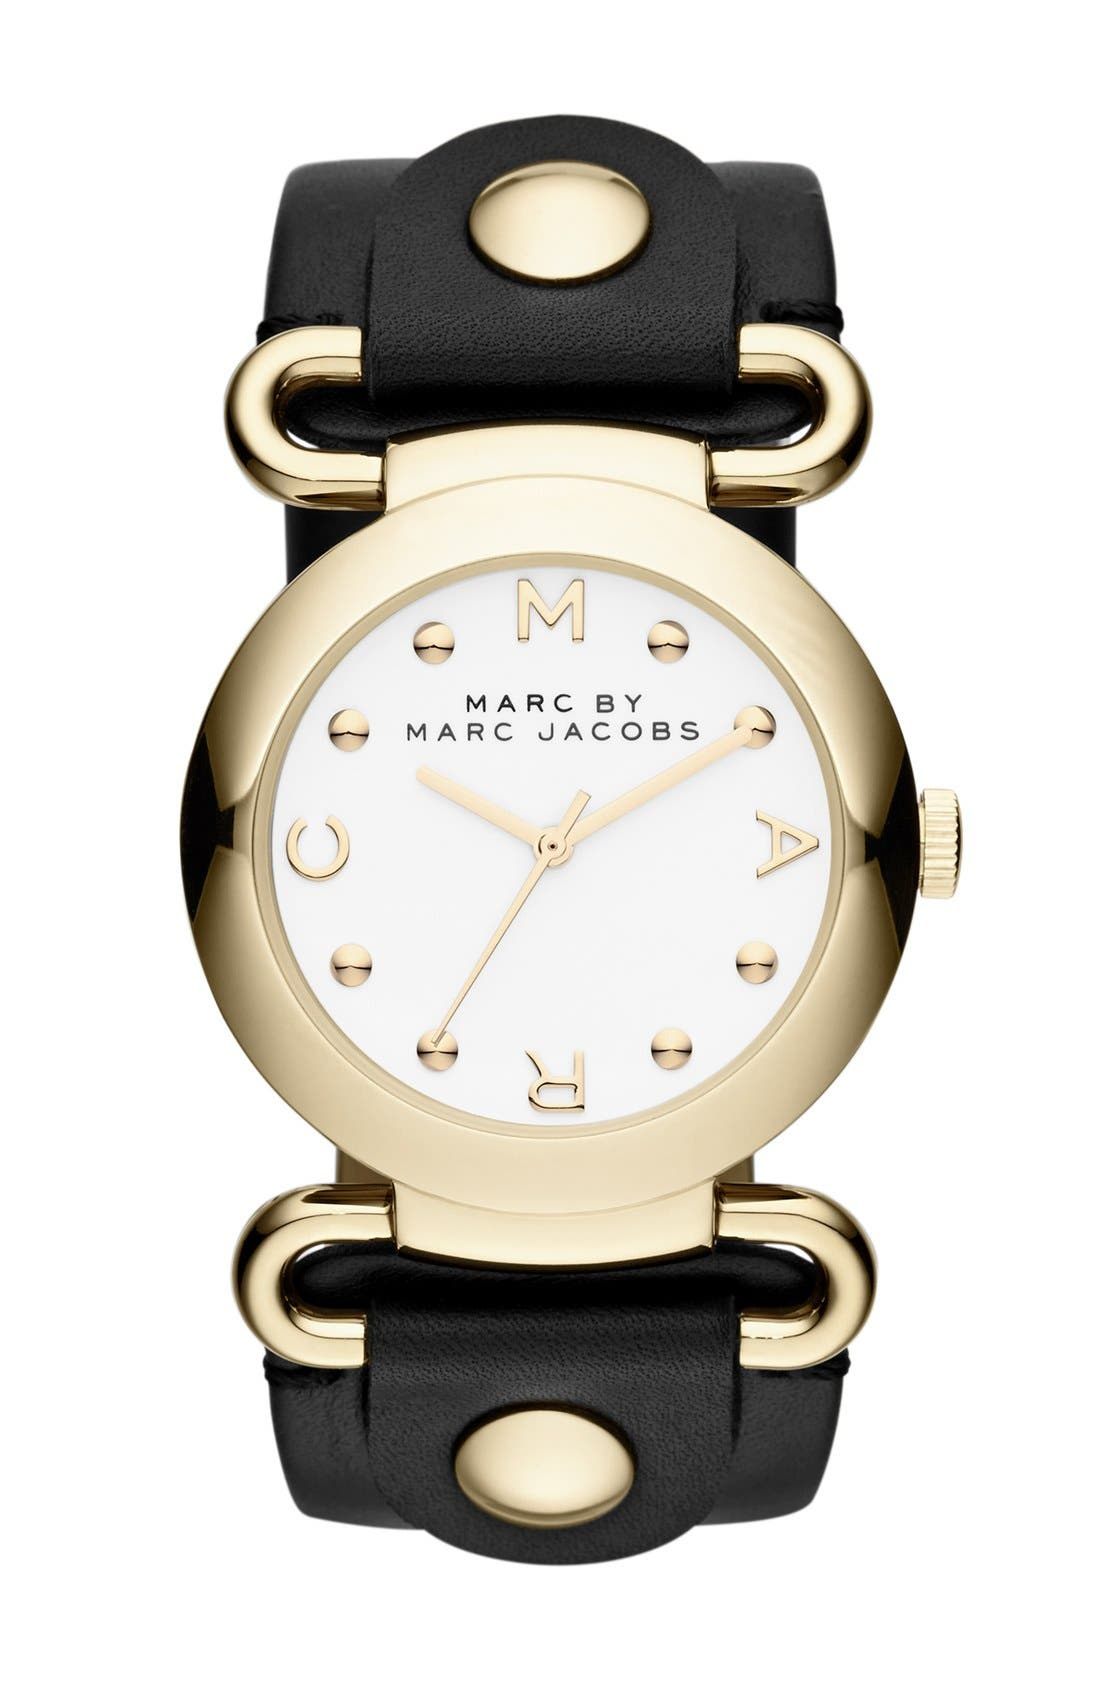 Main Image - MARC JACOBS 'Molly' Leather Strap Watch, 36mm